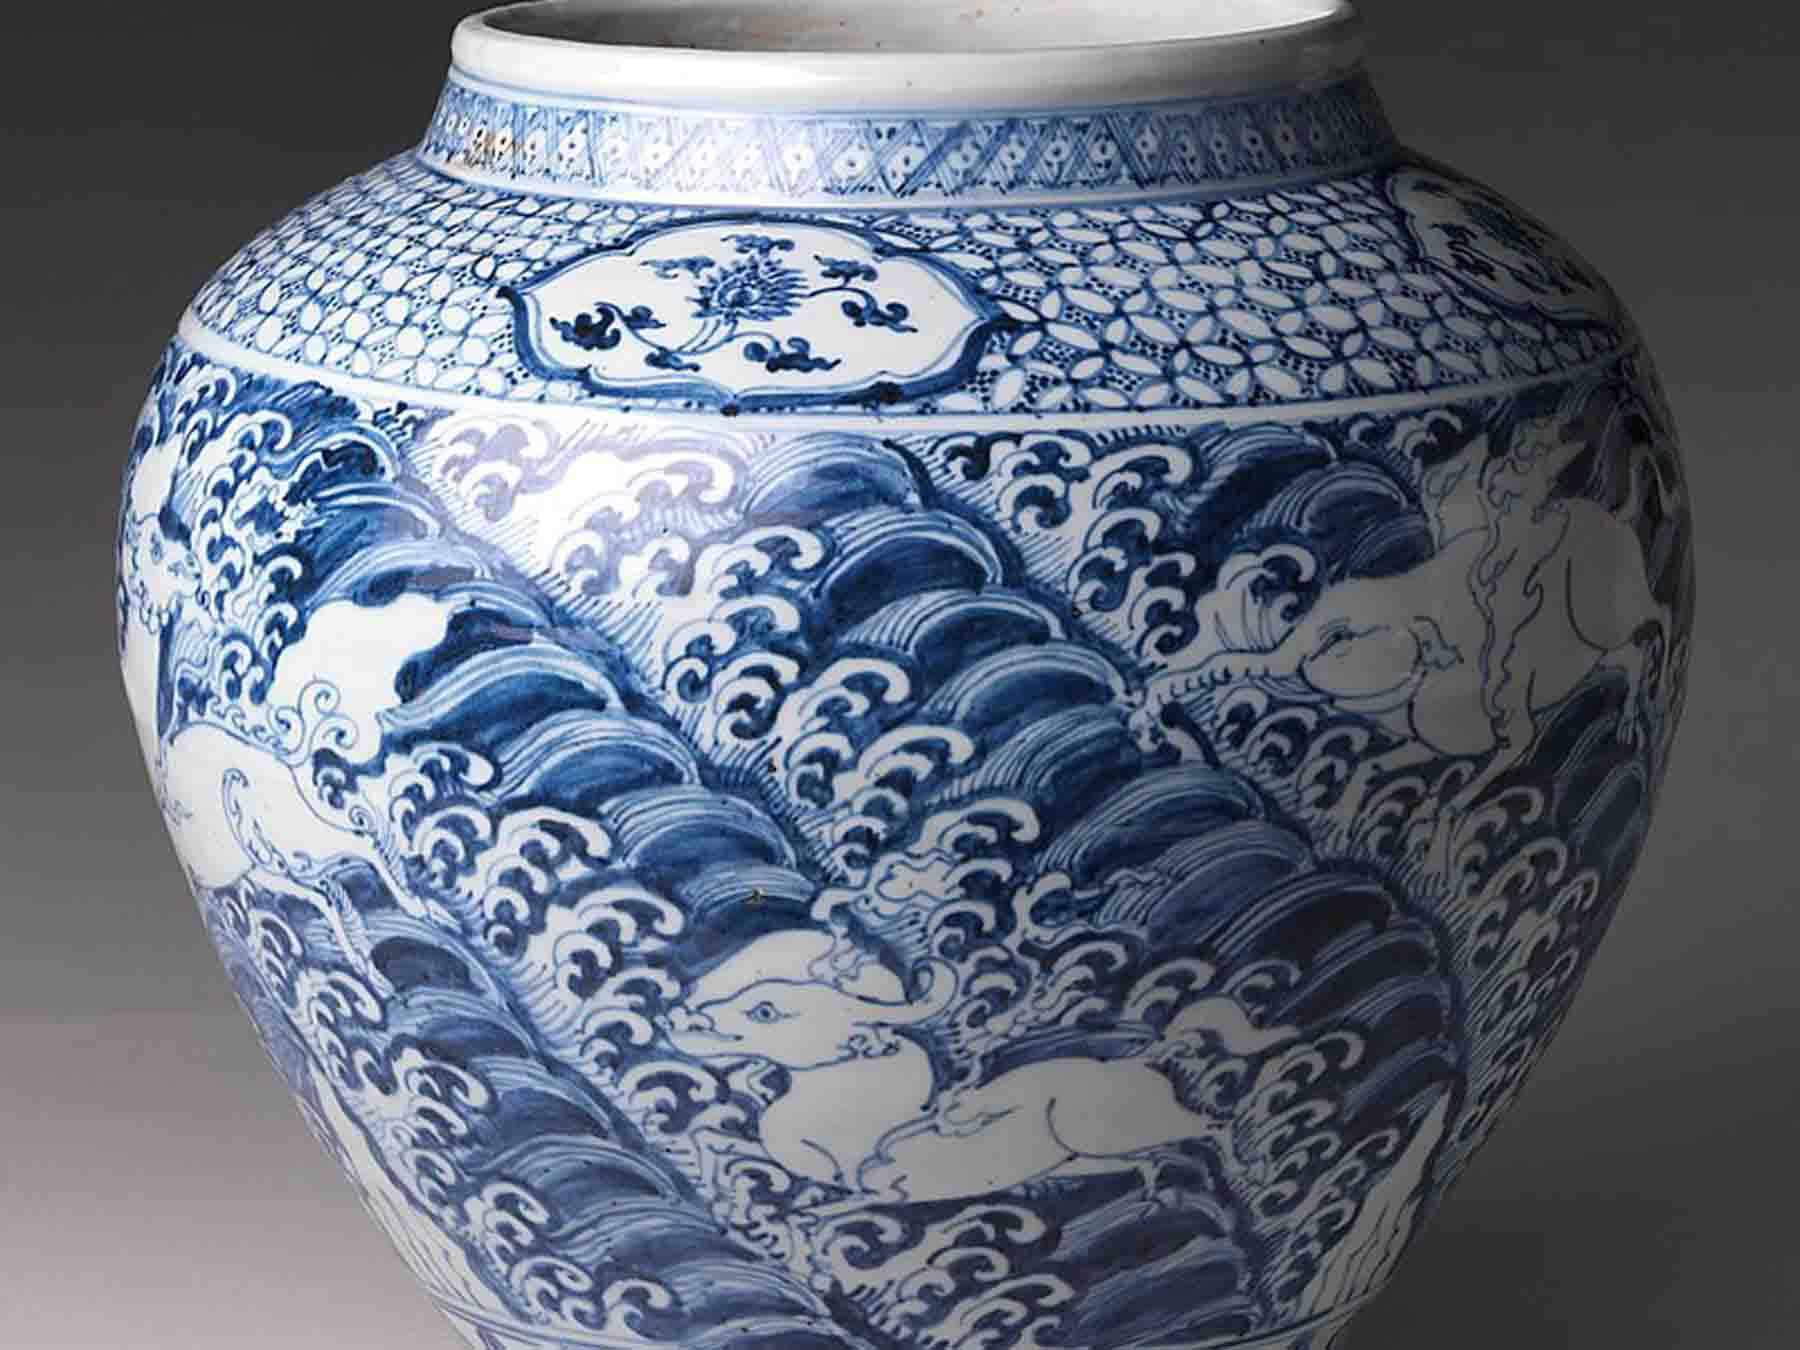 Blue Willow China Vase